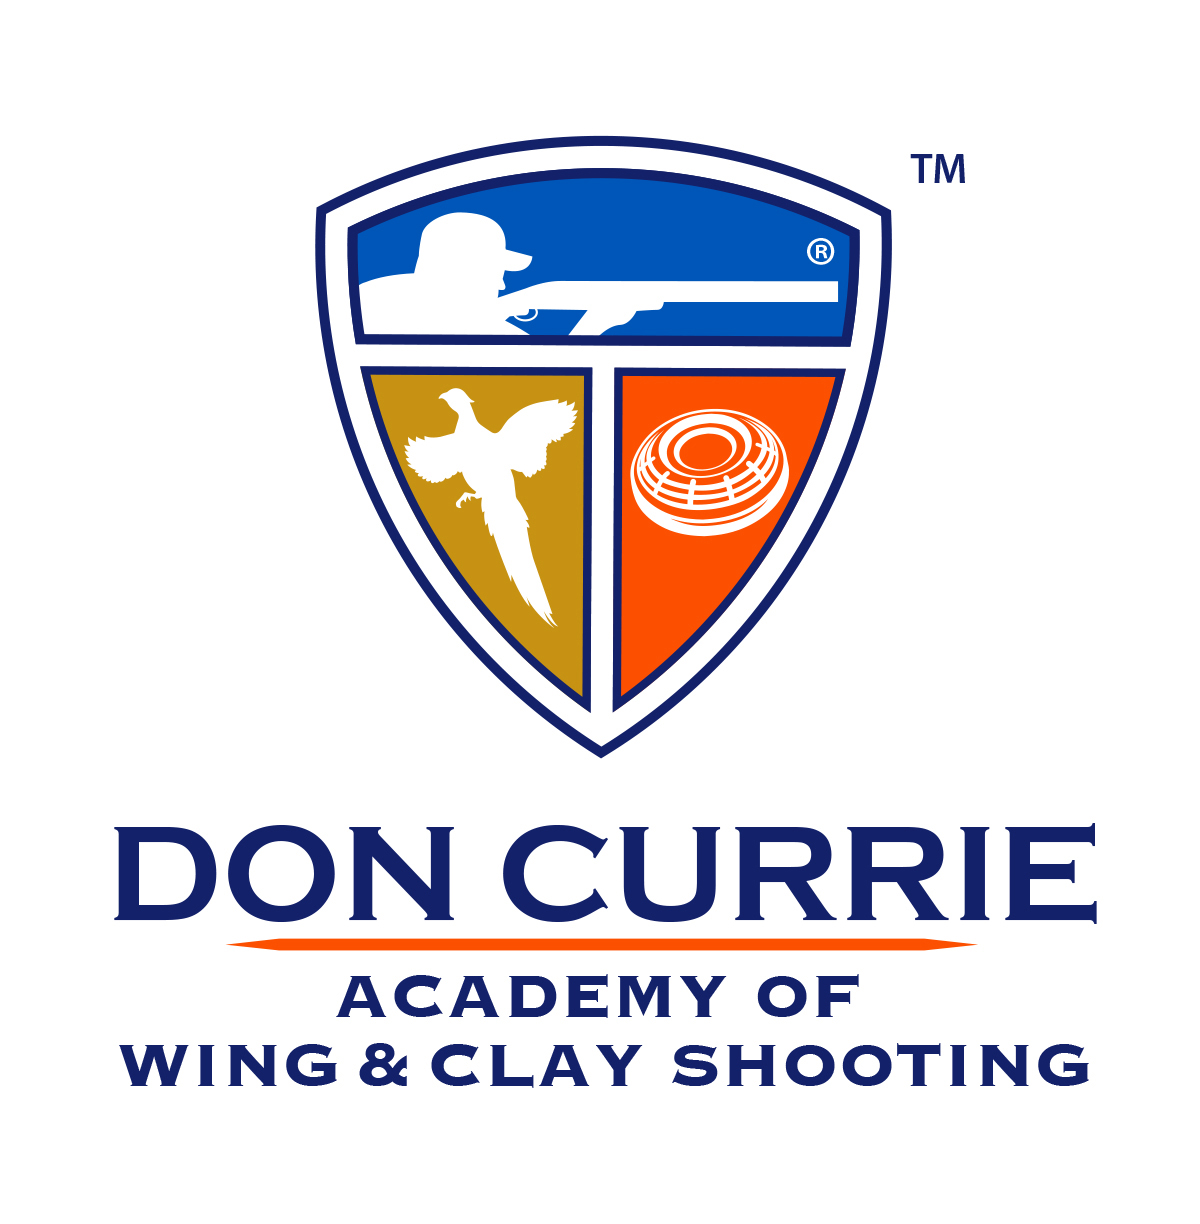 Don Currie